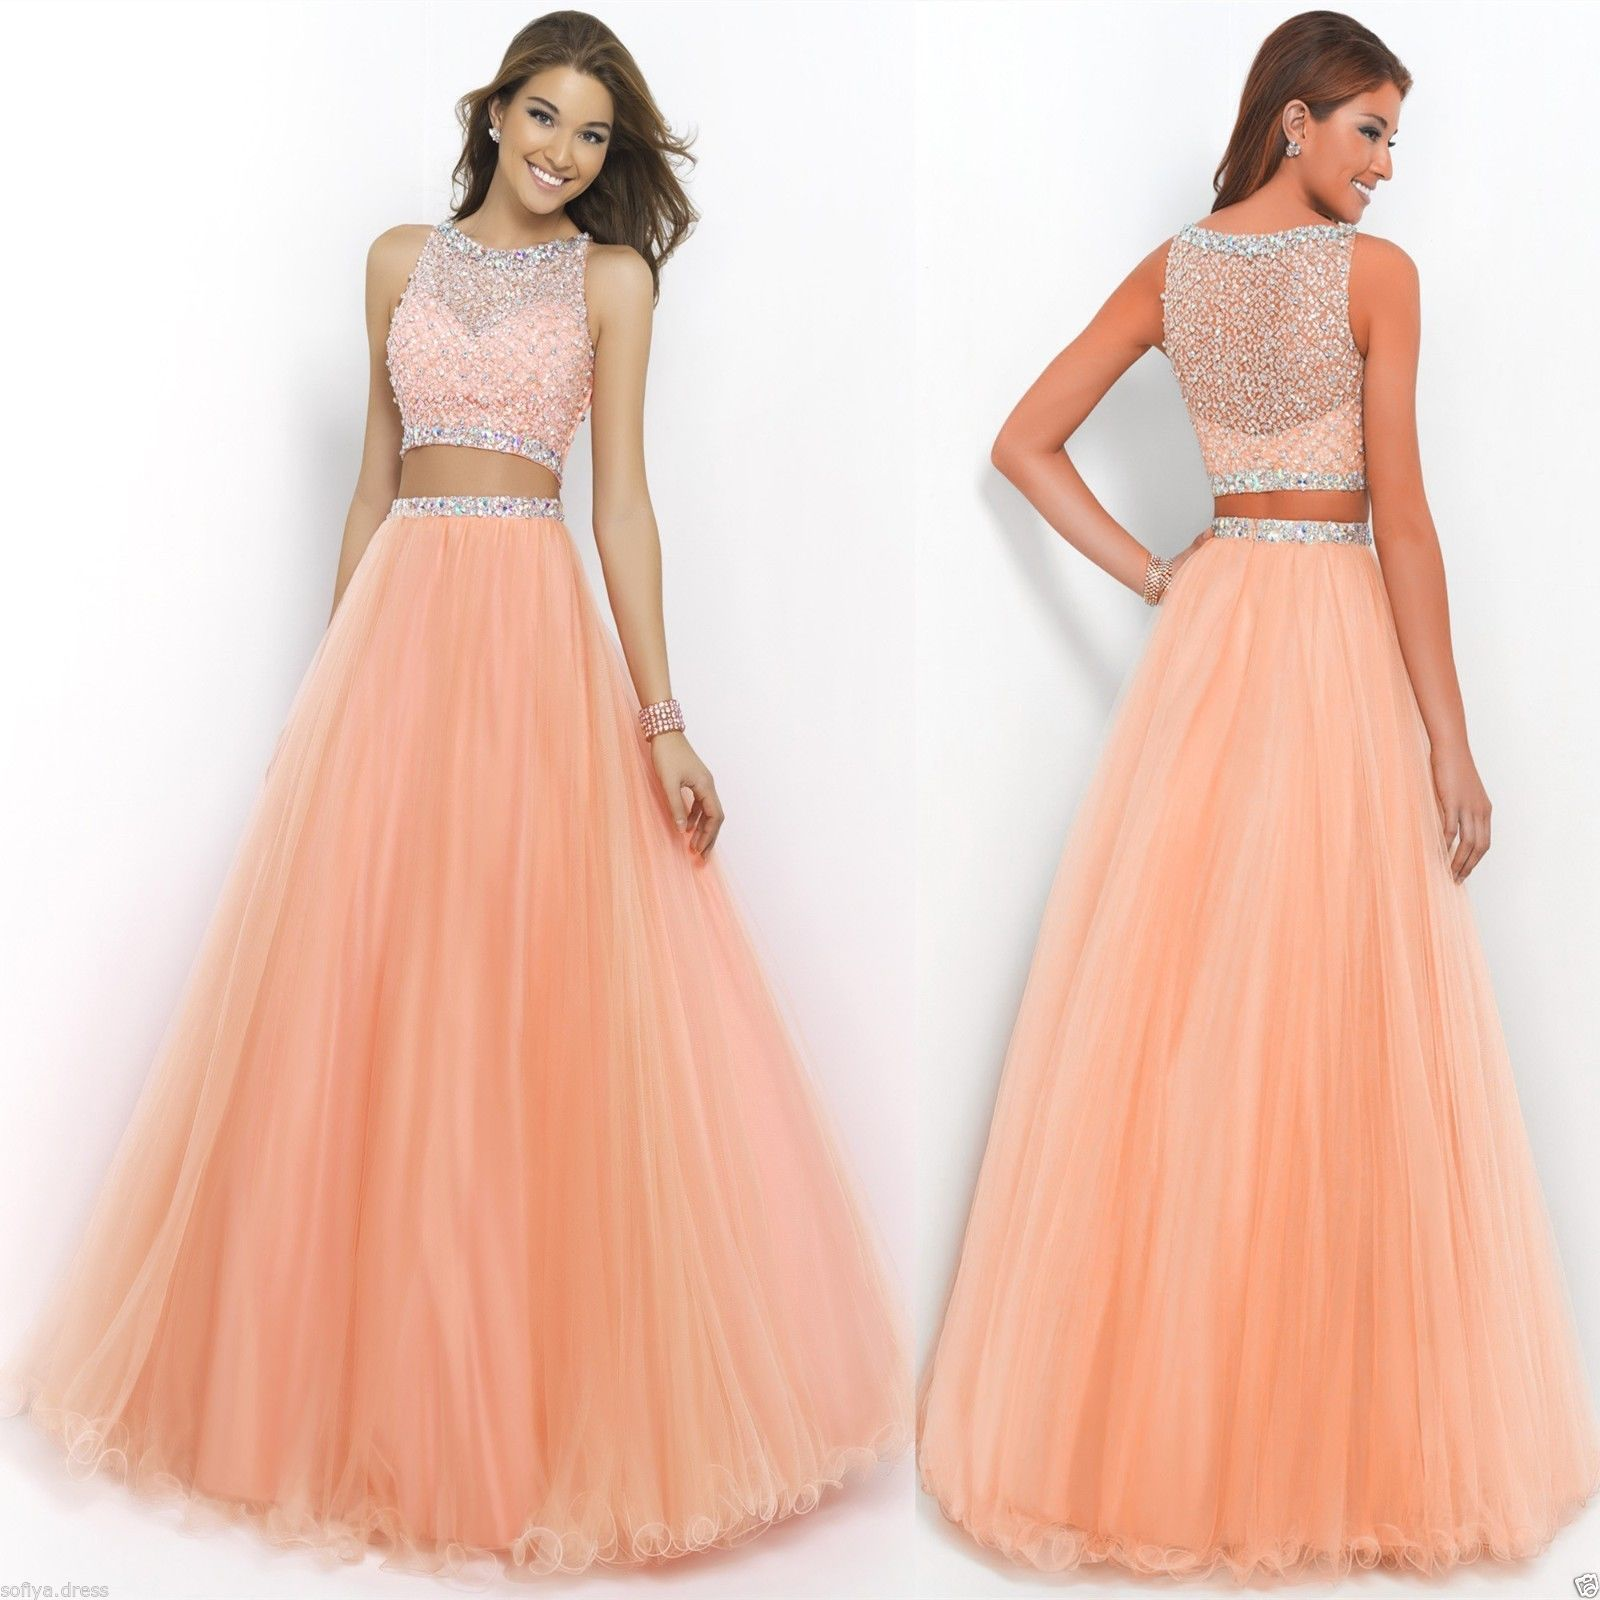 Awesome new pieces tulle long sexy beaded prom dress party